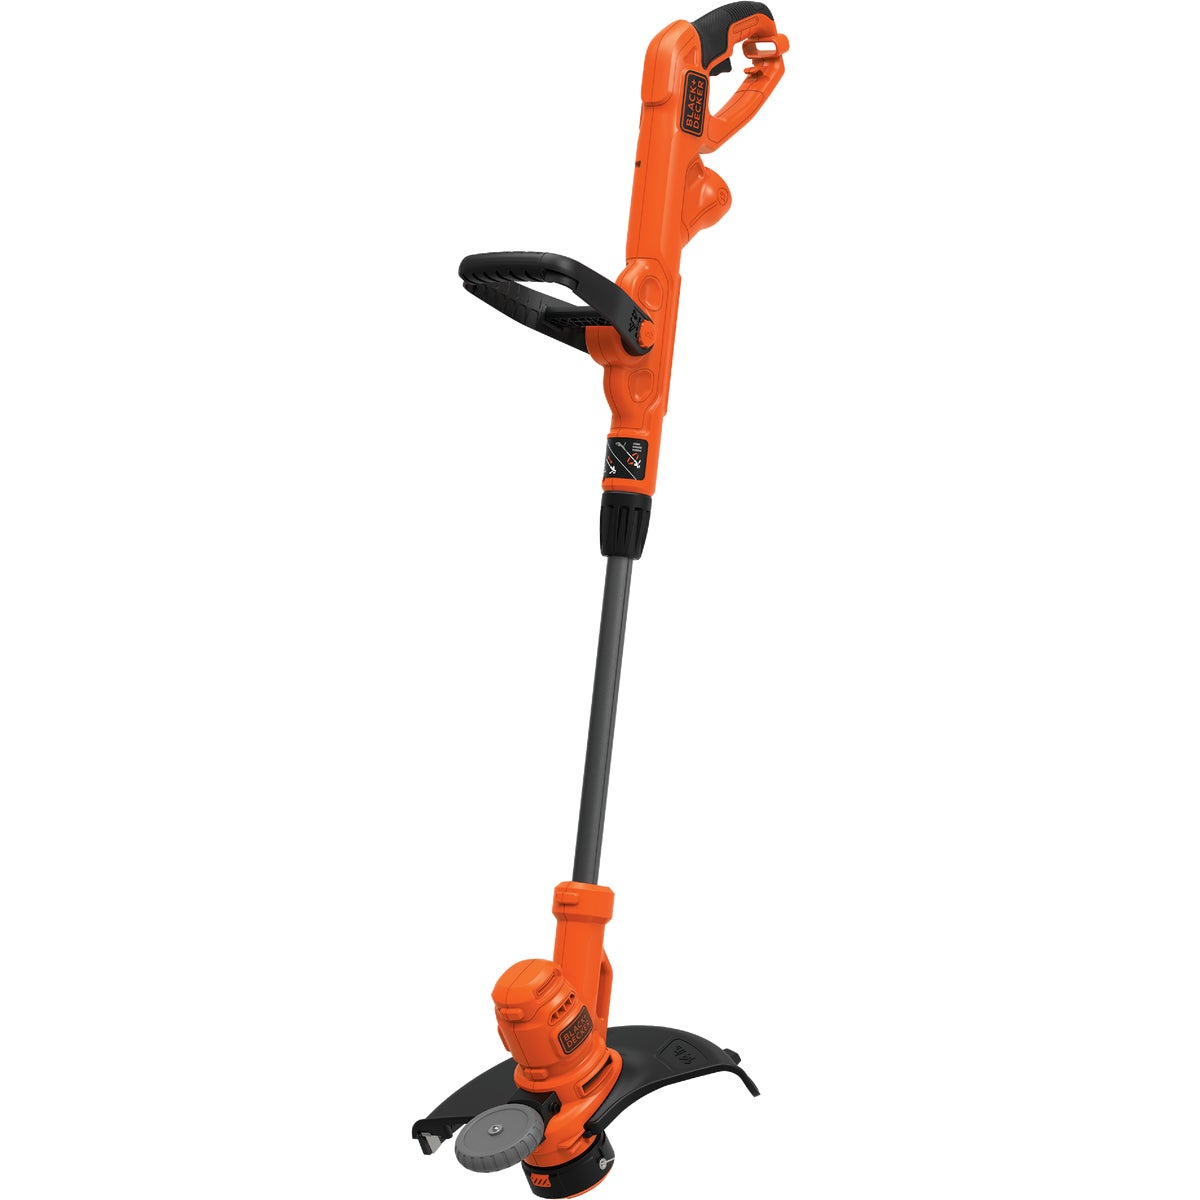 "14"" STRING TRIMMER - GH900 by Black & Decker"